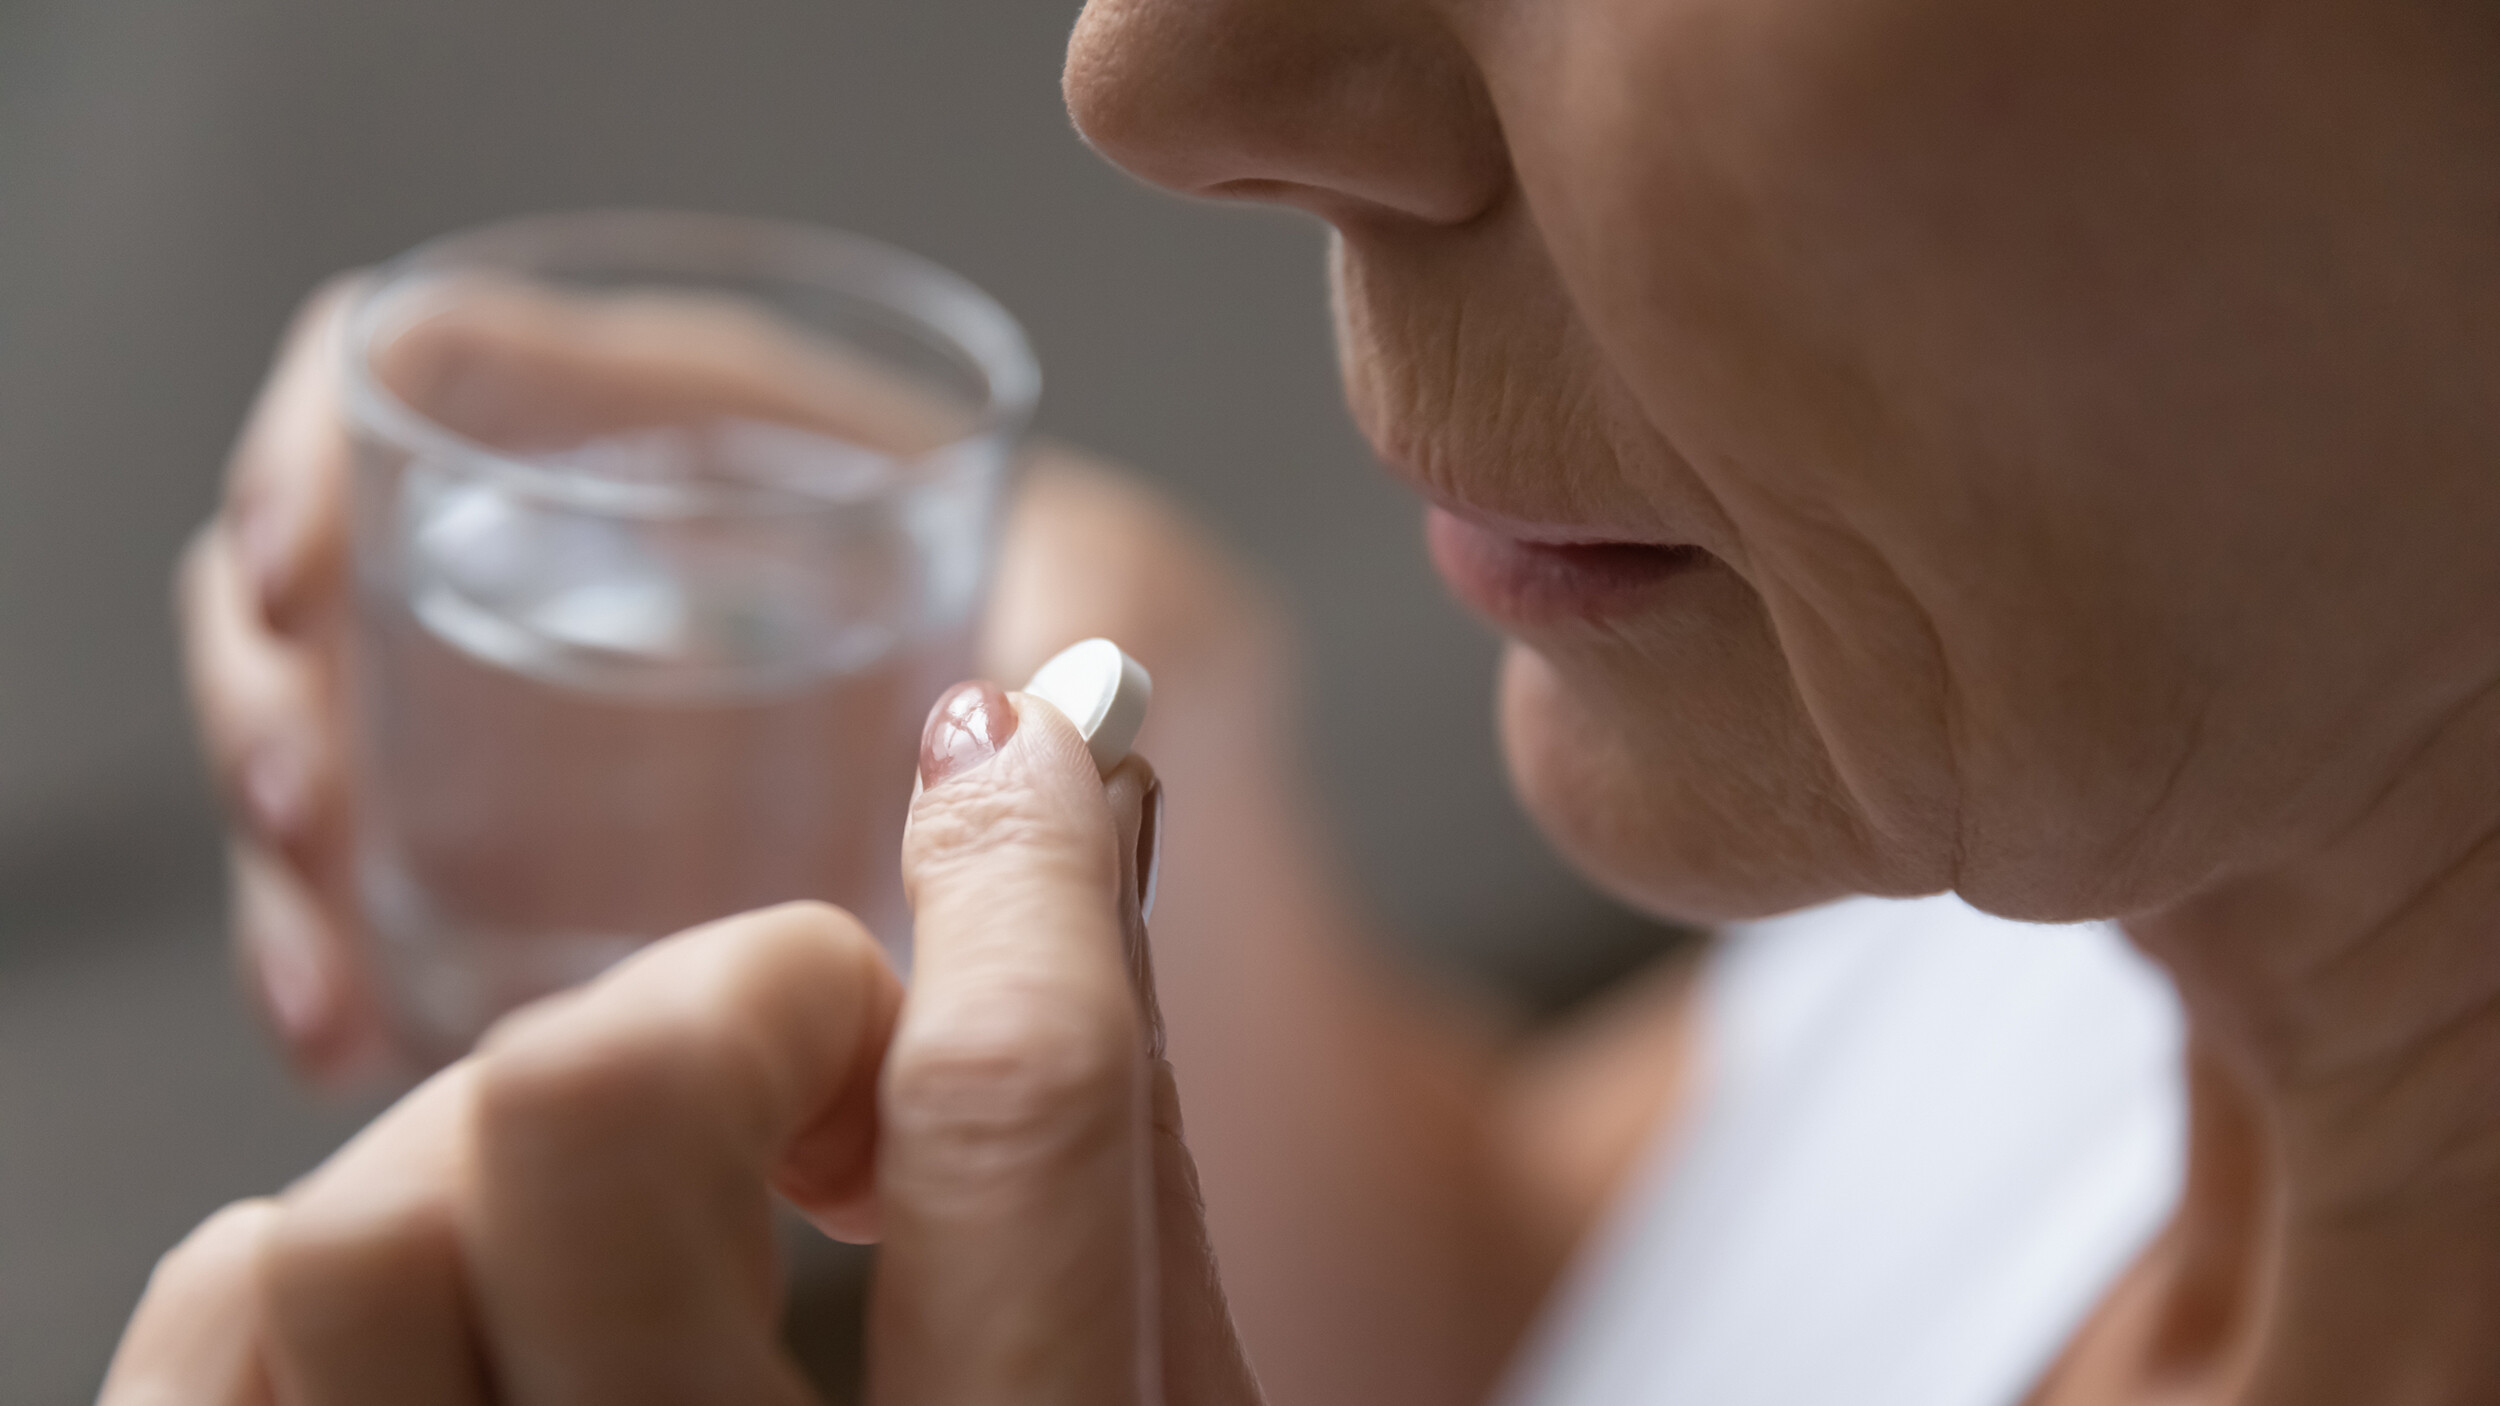 US task force proposes adults 60 and older should not start daily aspirin to prevent heart disease or stroke